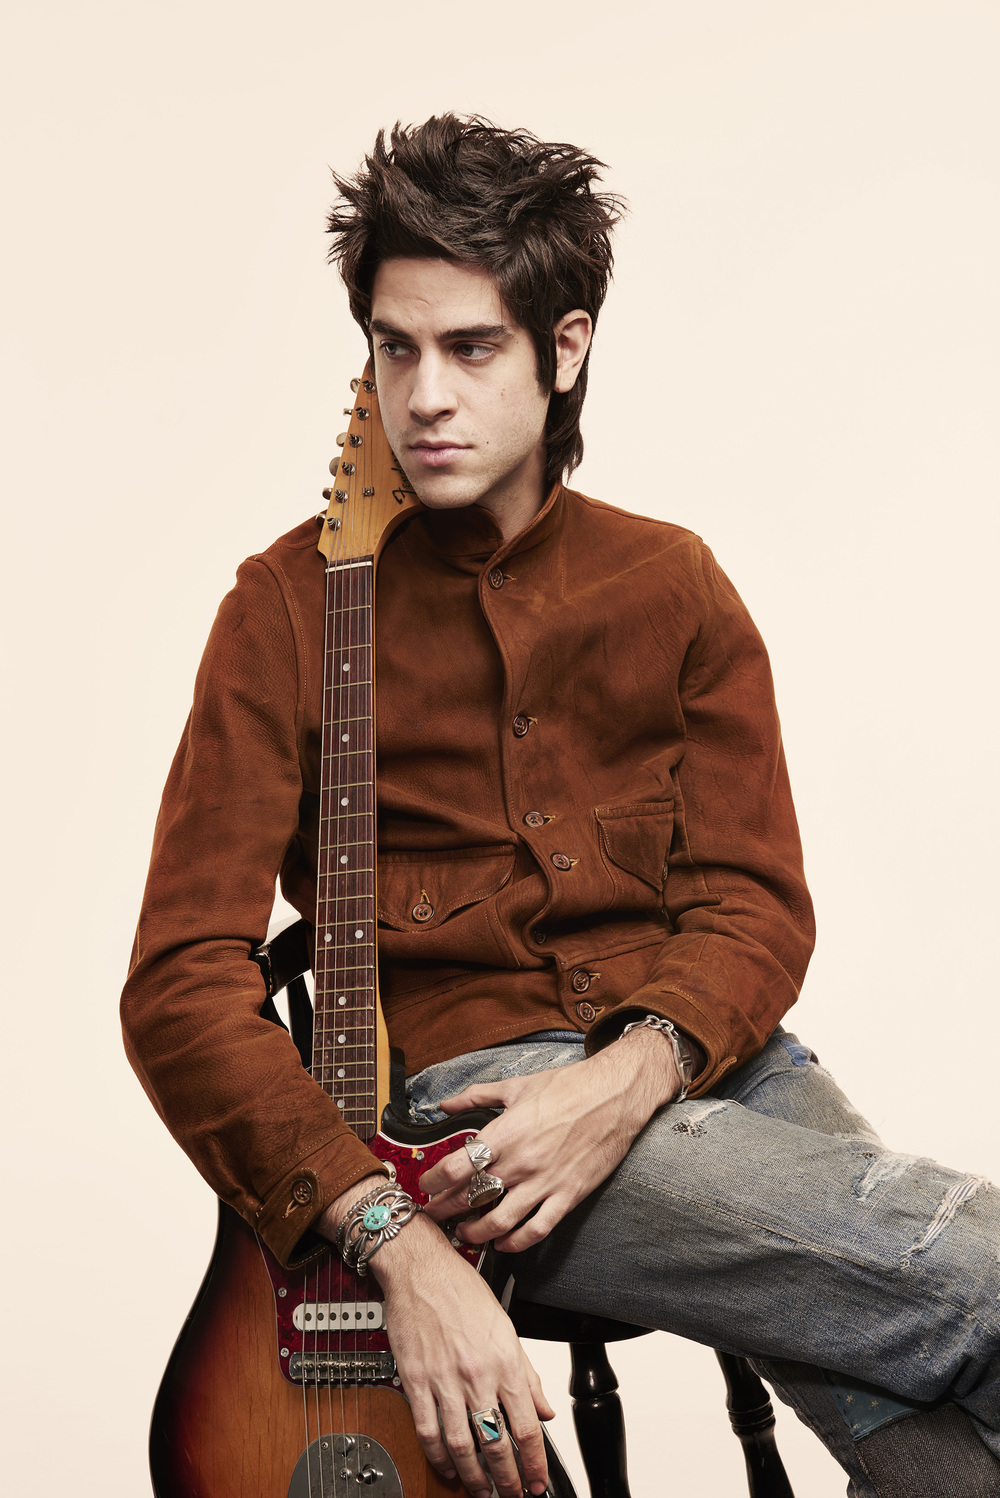 Thomas Cohen, The Sunday Times Magazine